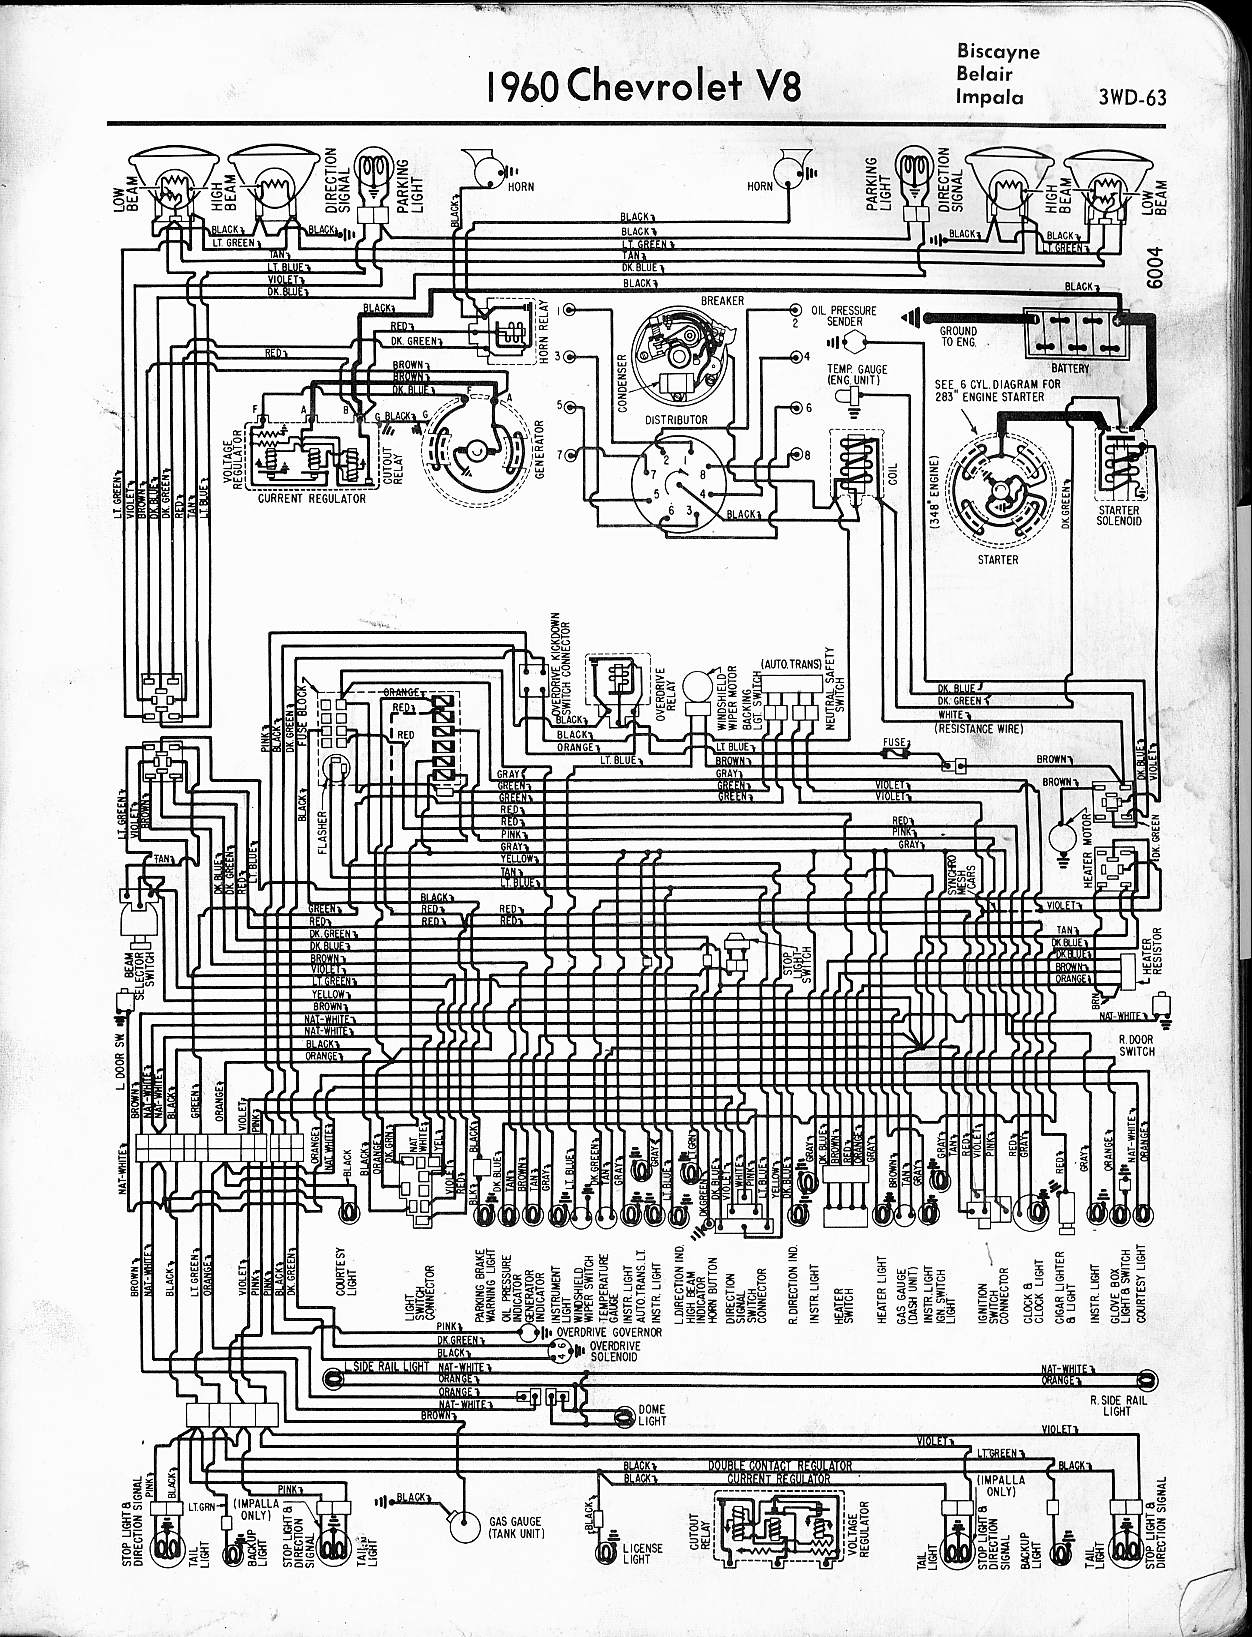 1970 Grand Prix Wiring Diagram Enthusiast Diagrams 70 Chevelle Ss Fuse Box For You All 1960 Pontiac Block And Schematic U2022 Rh Lazysupply Co 1969 1968